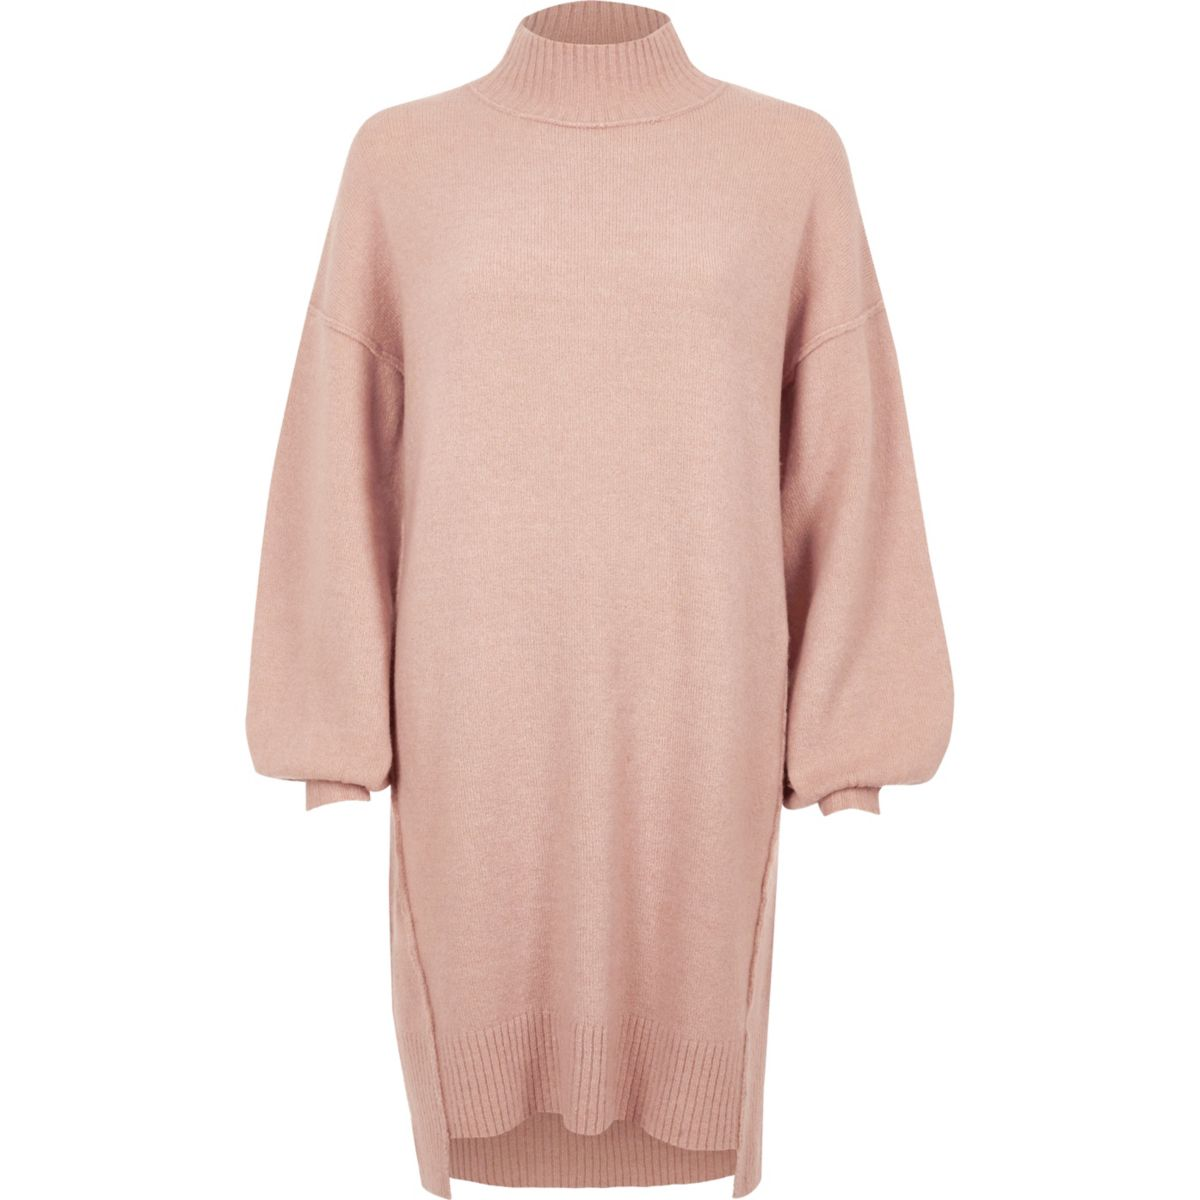 Light pink knit balloon sleeve sweater dress